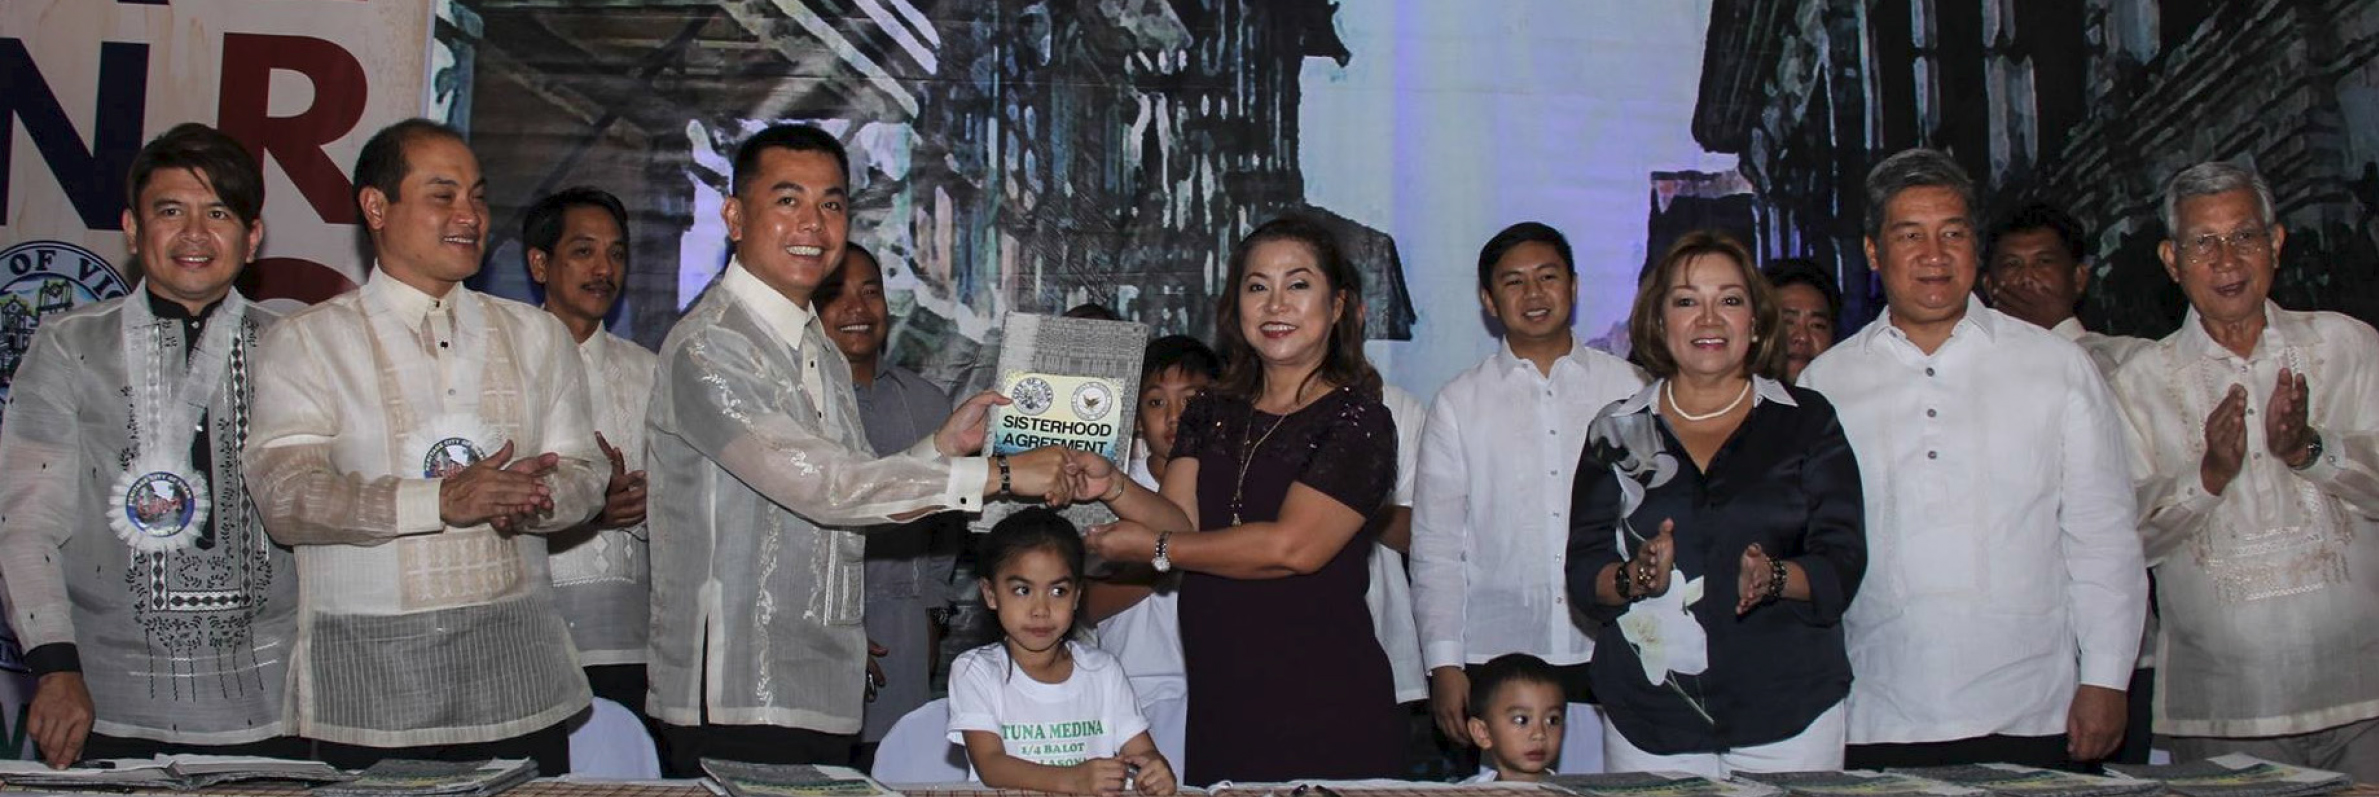 Vigan City inks Sisterhood Agreement with Pateros